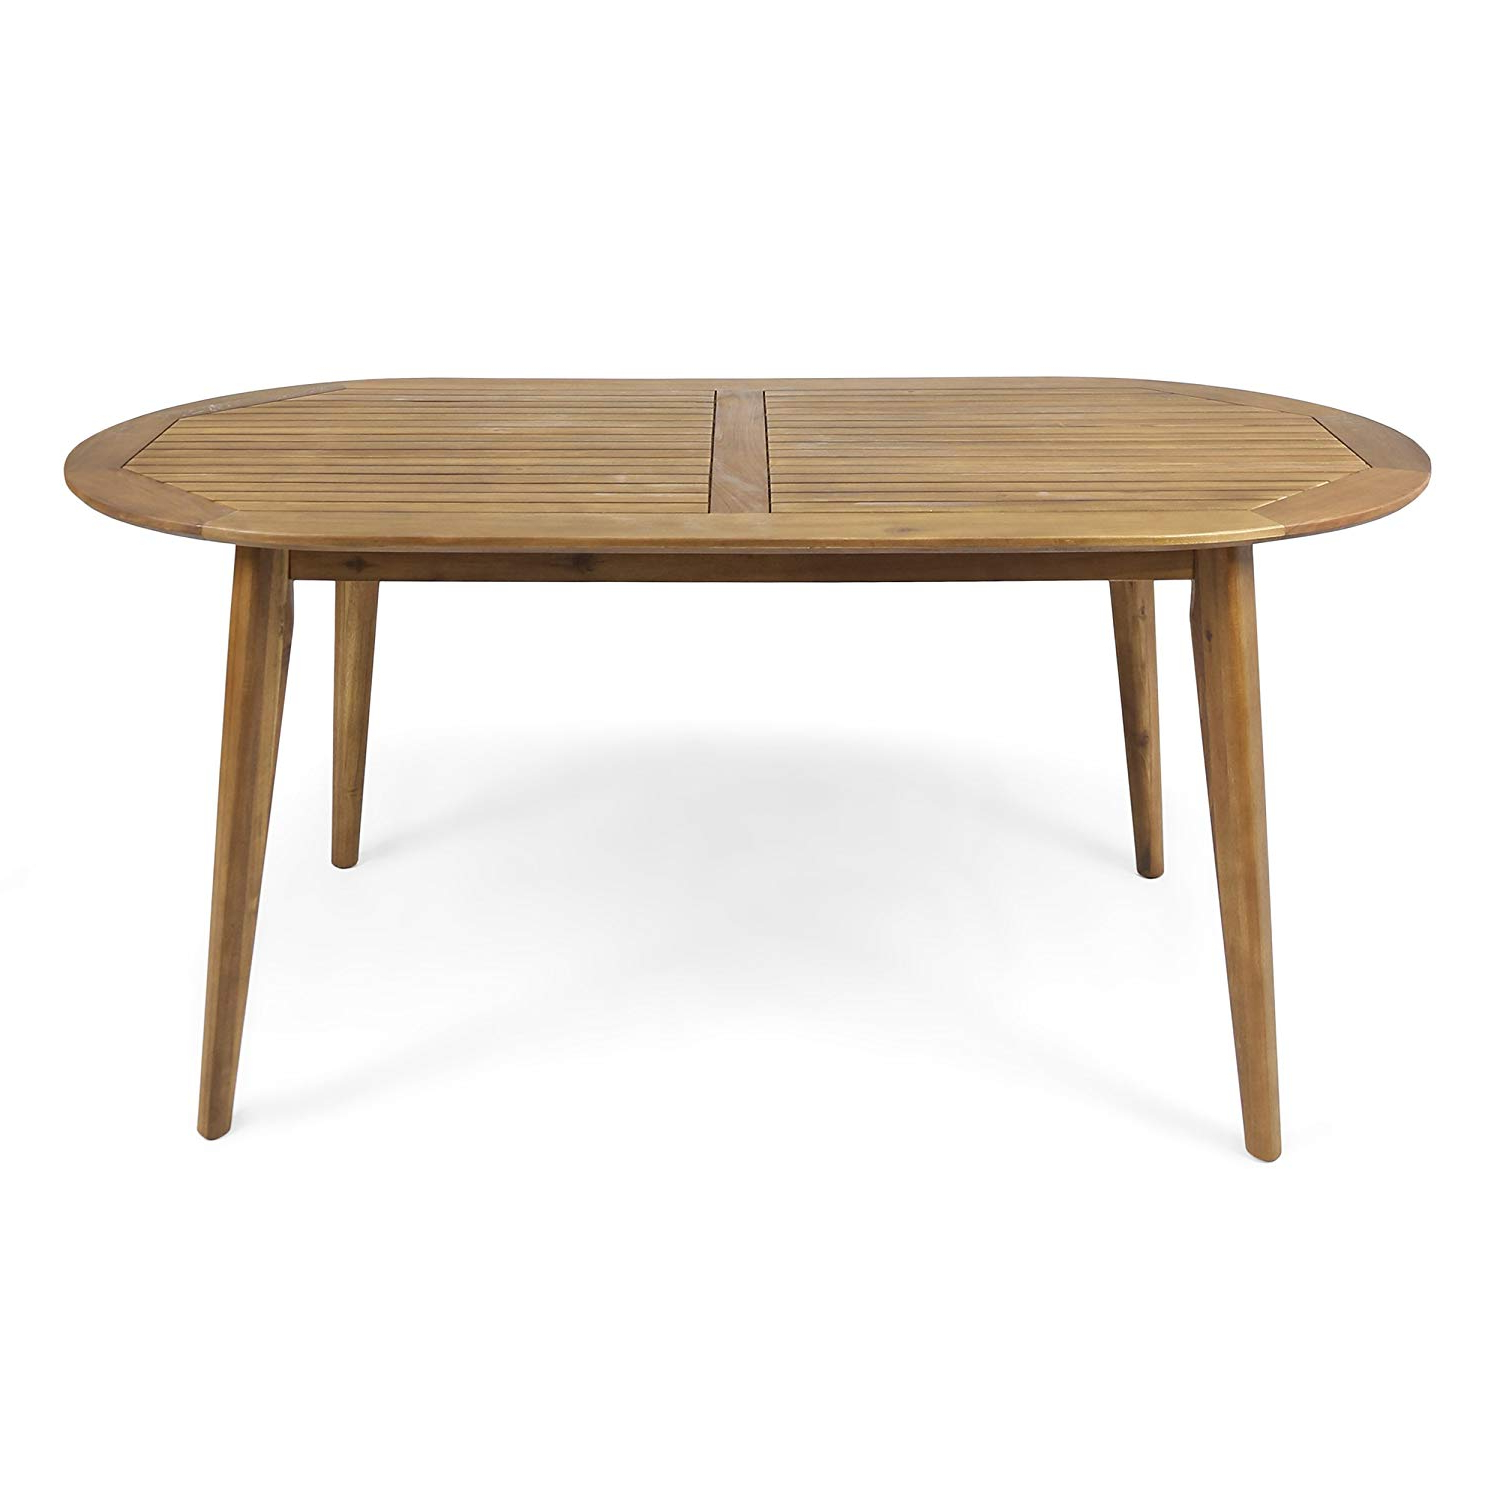 Preferred Amazon: Christopher Knight Home Stanford Outdoor 71 Within Unique Acacia Wood Dining Tables (View 15 of 25)